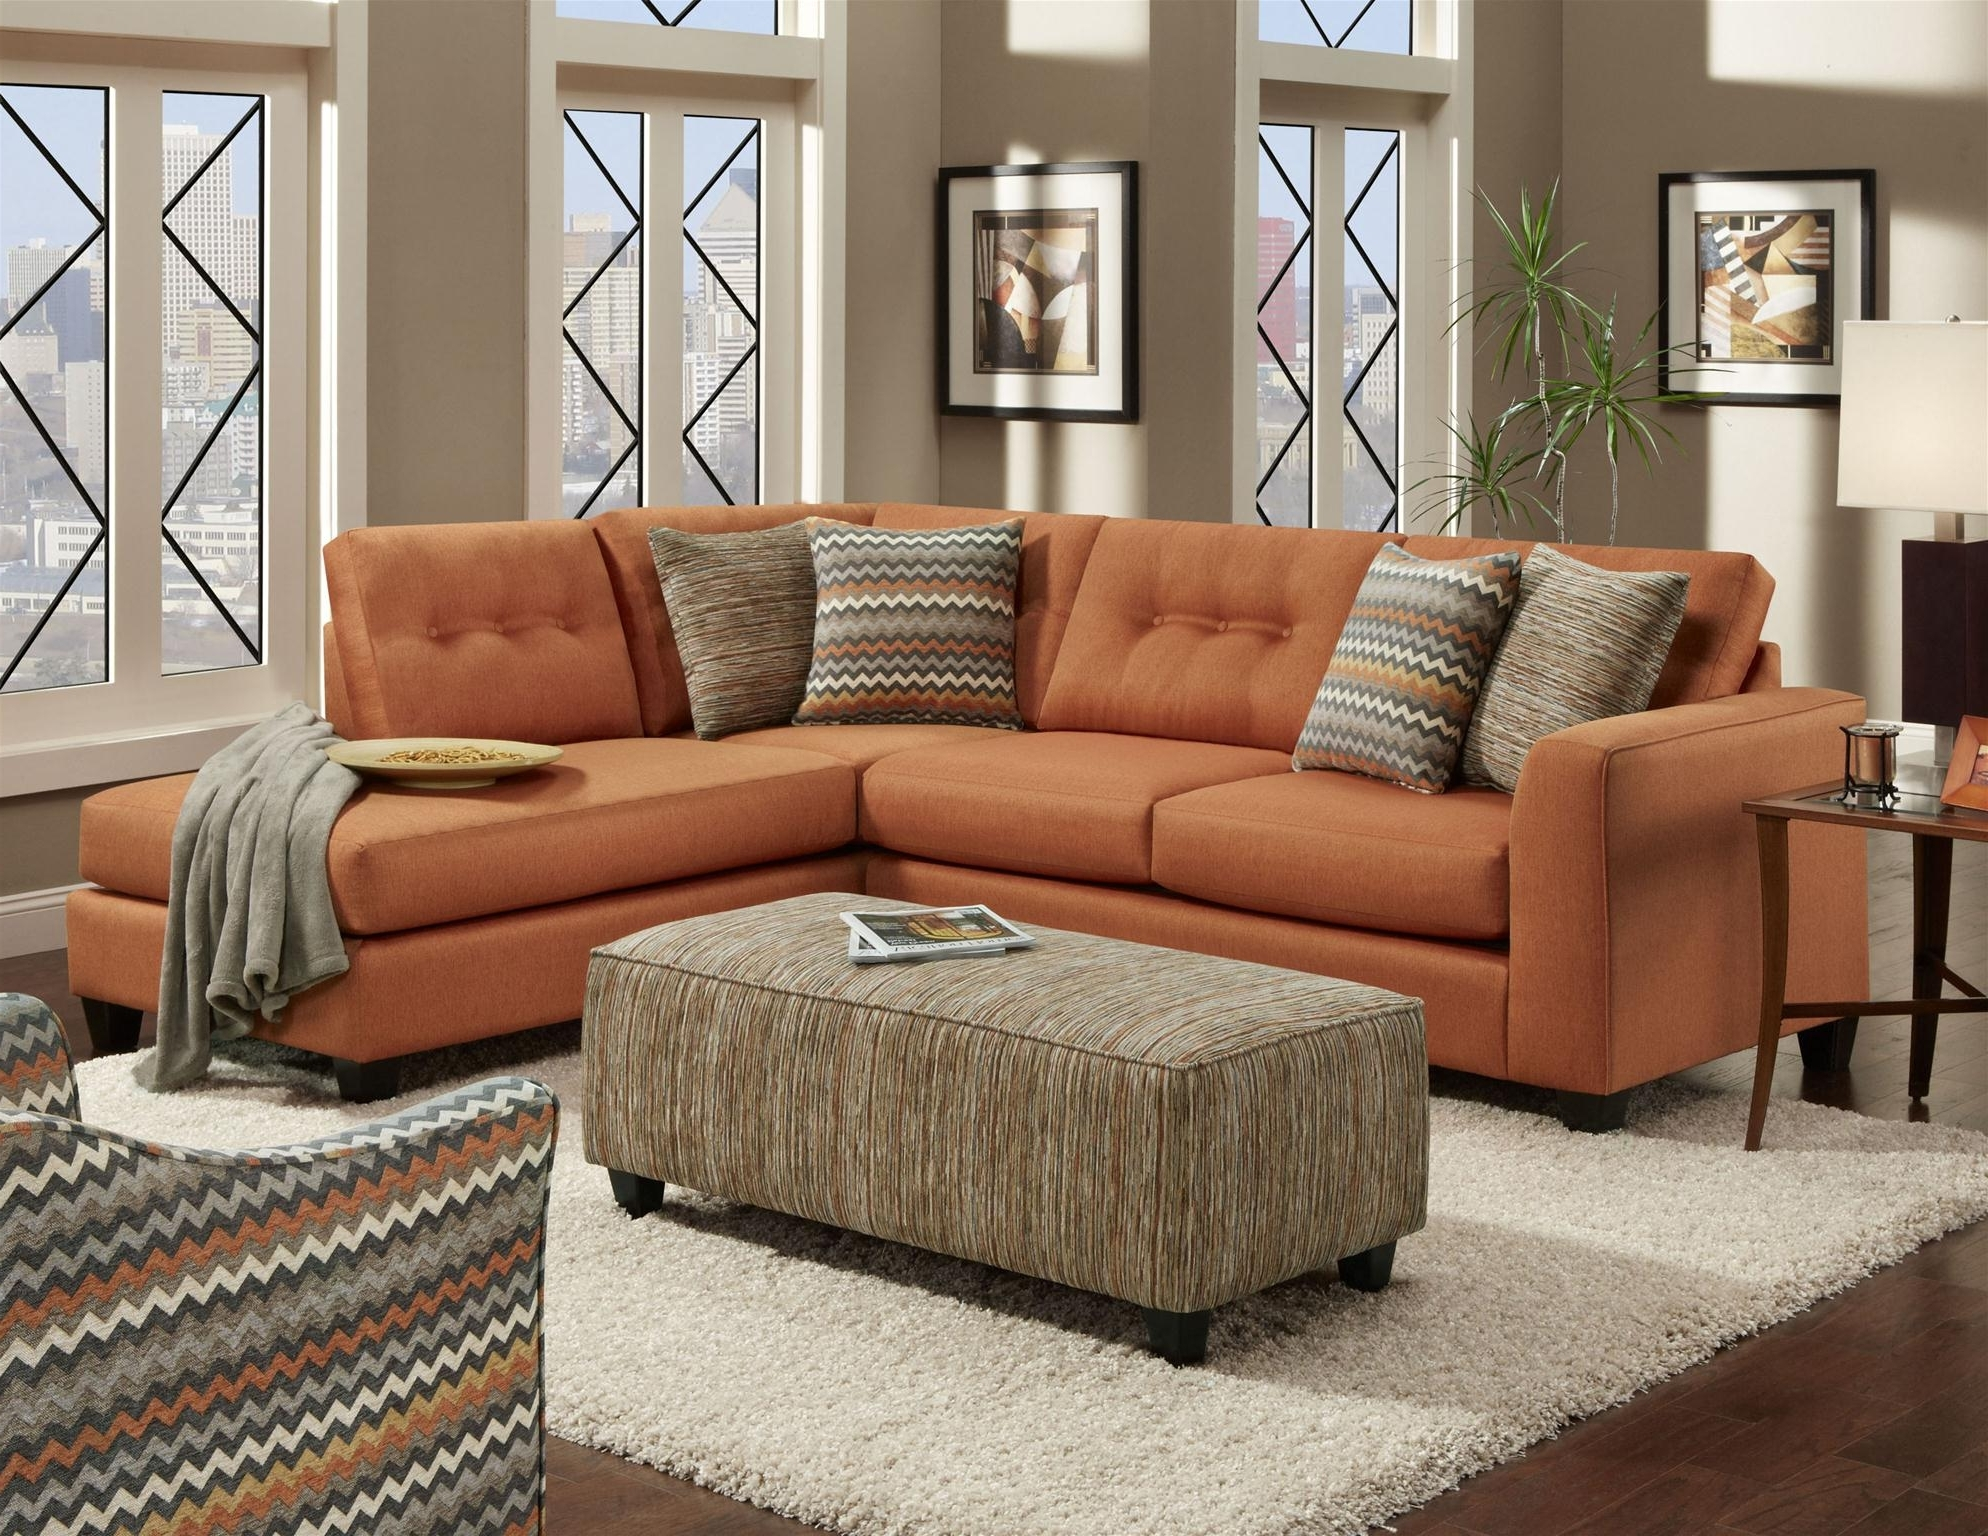 Should You Consider A Sectional? – Wg&r Furniture Throughout Most Popular Orange Sectional Sofas (View 15 of 15)